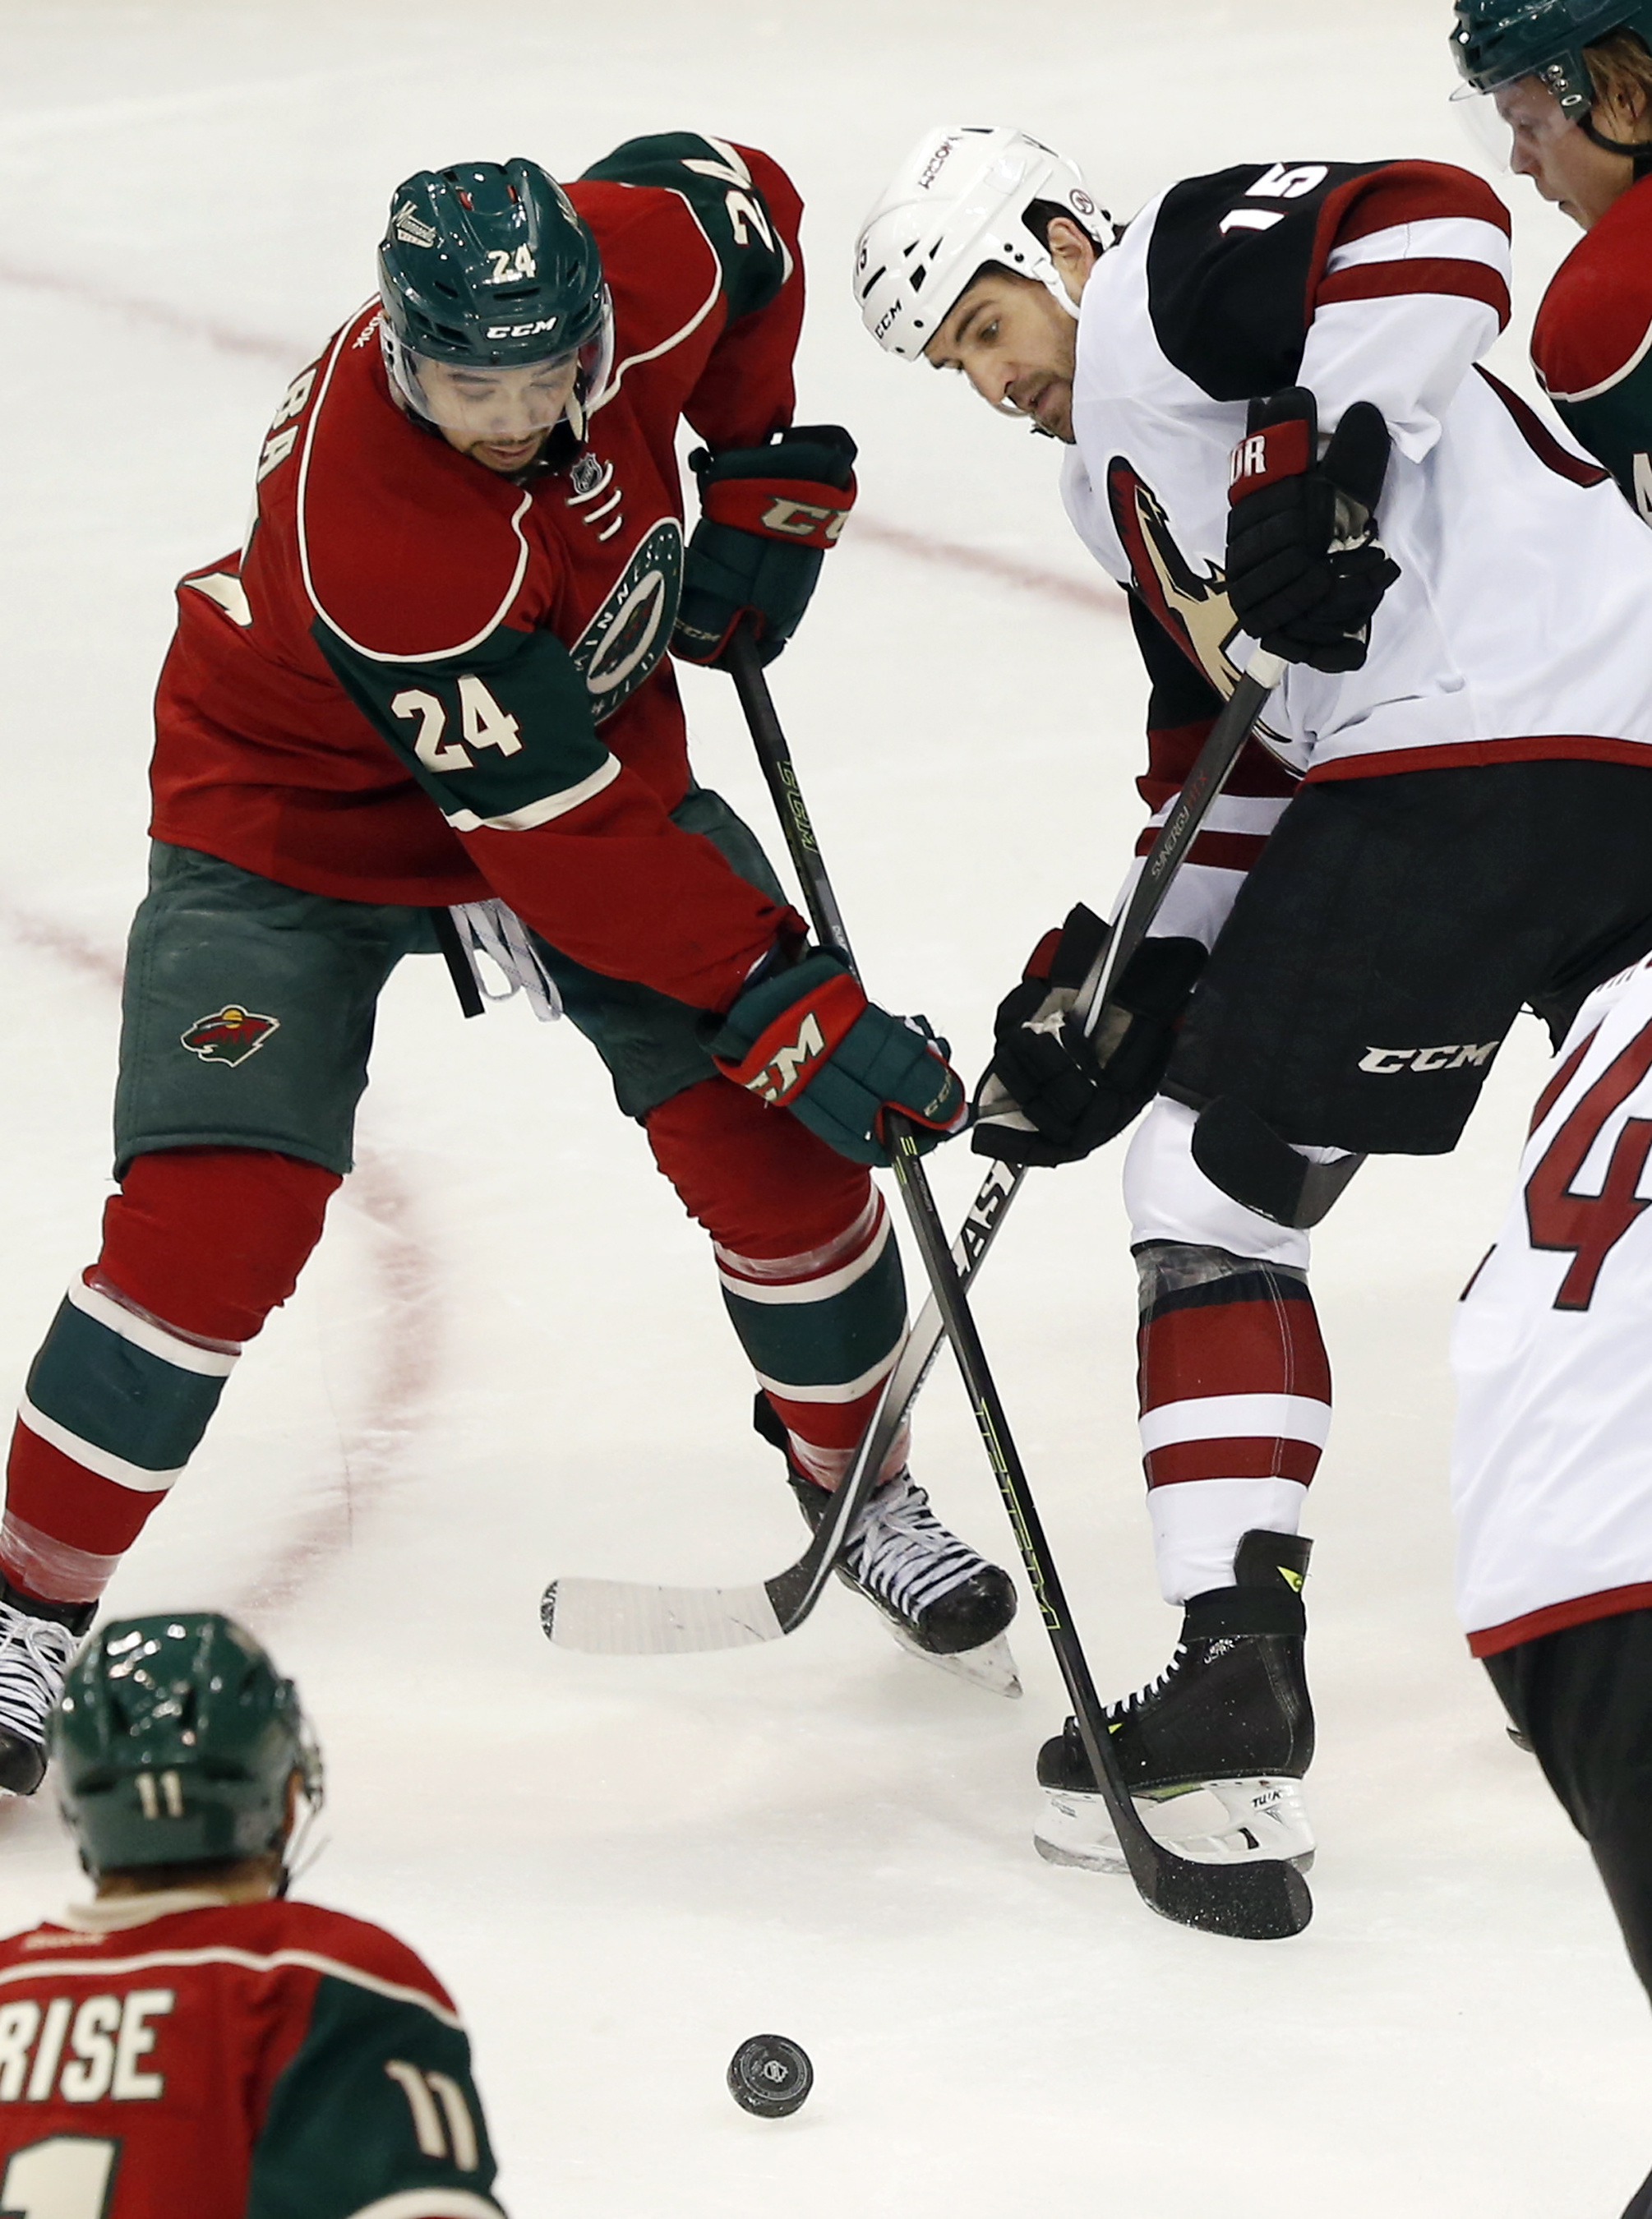 Minnesota Wild's Matt Dumba, left, tries to keep Arizona Coyotes' Boyd Gordon away from the puck in the first period  of an NHL hockey game, Monday, Jan. 25, 2016, in St. Paul, Minn. (AP Photo/Jim Mone)